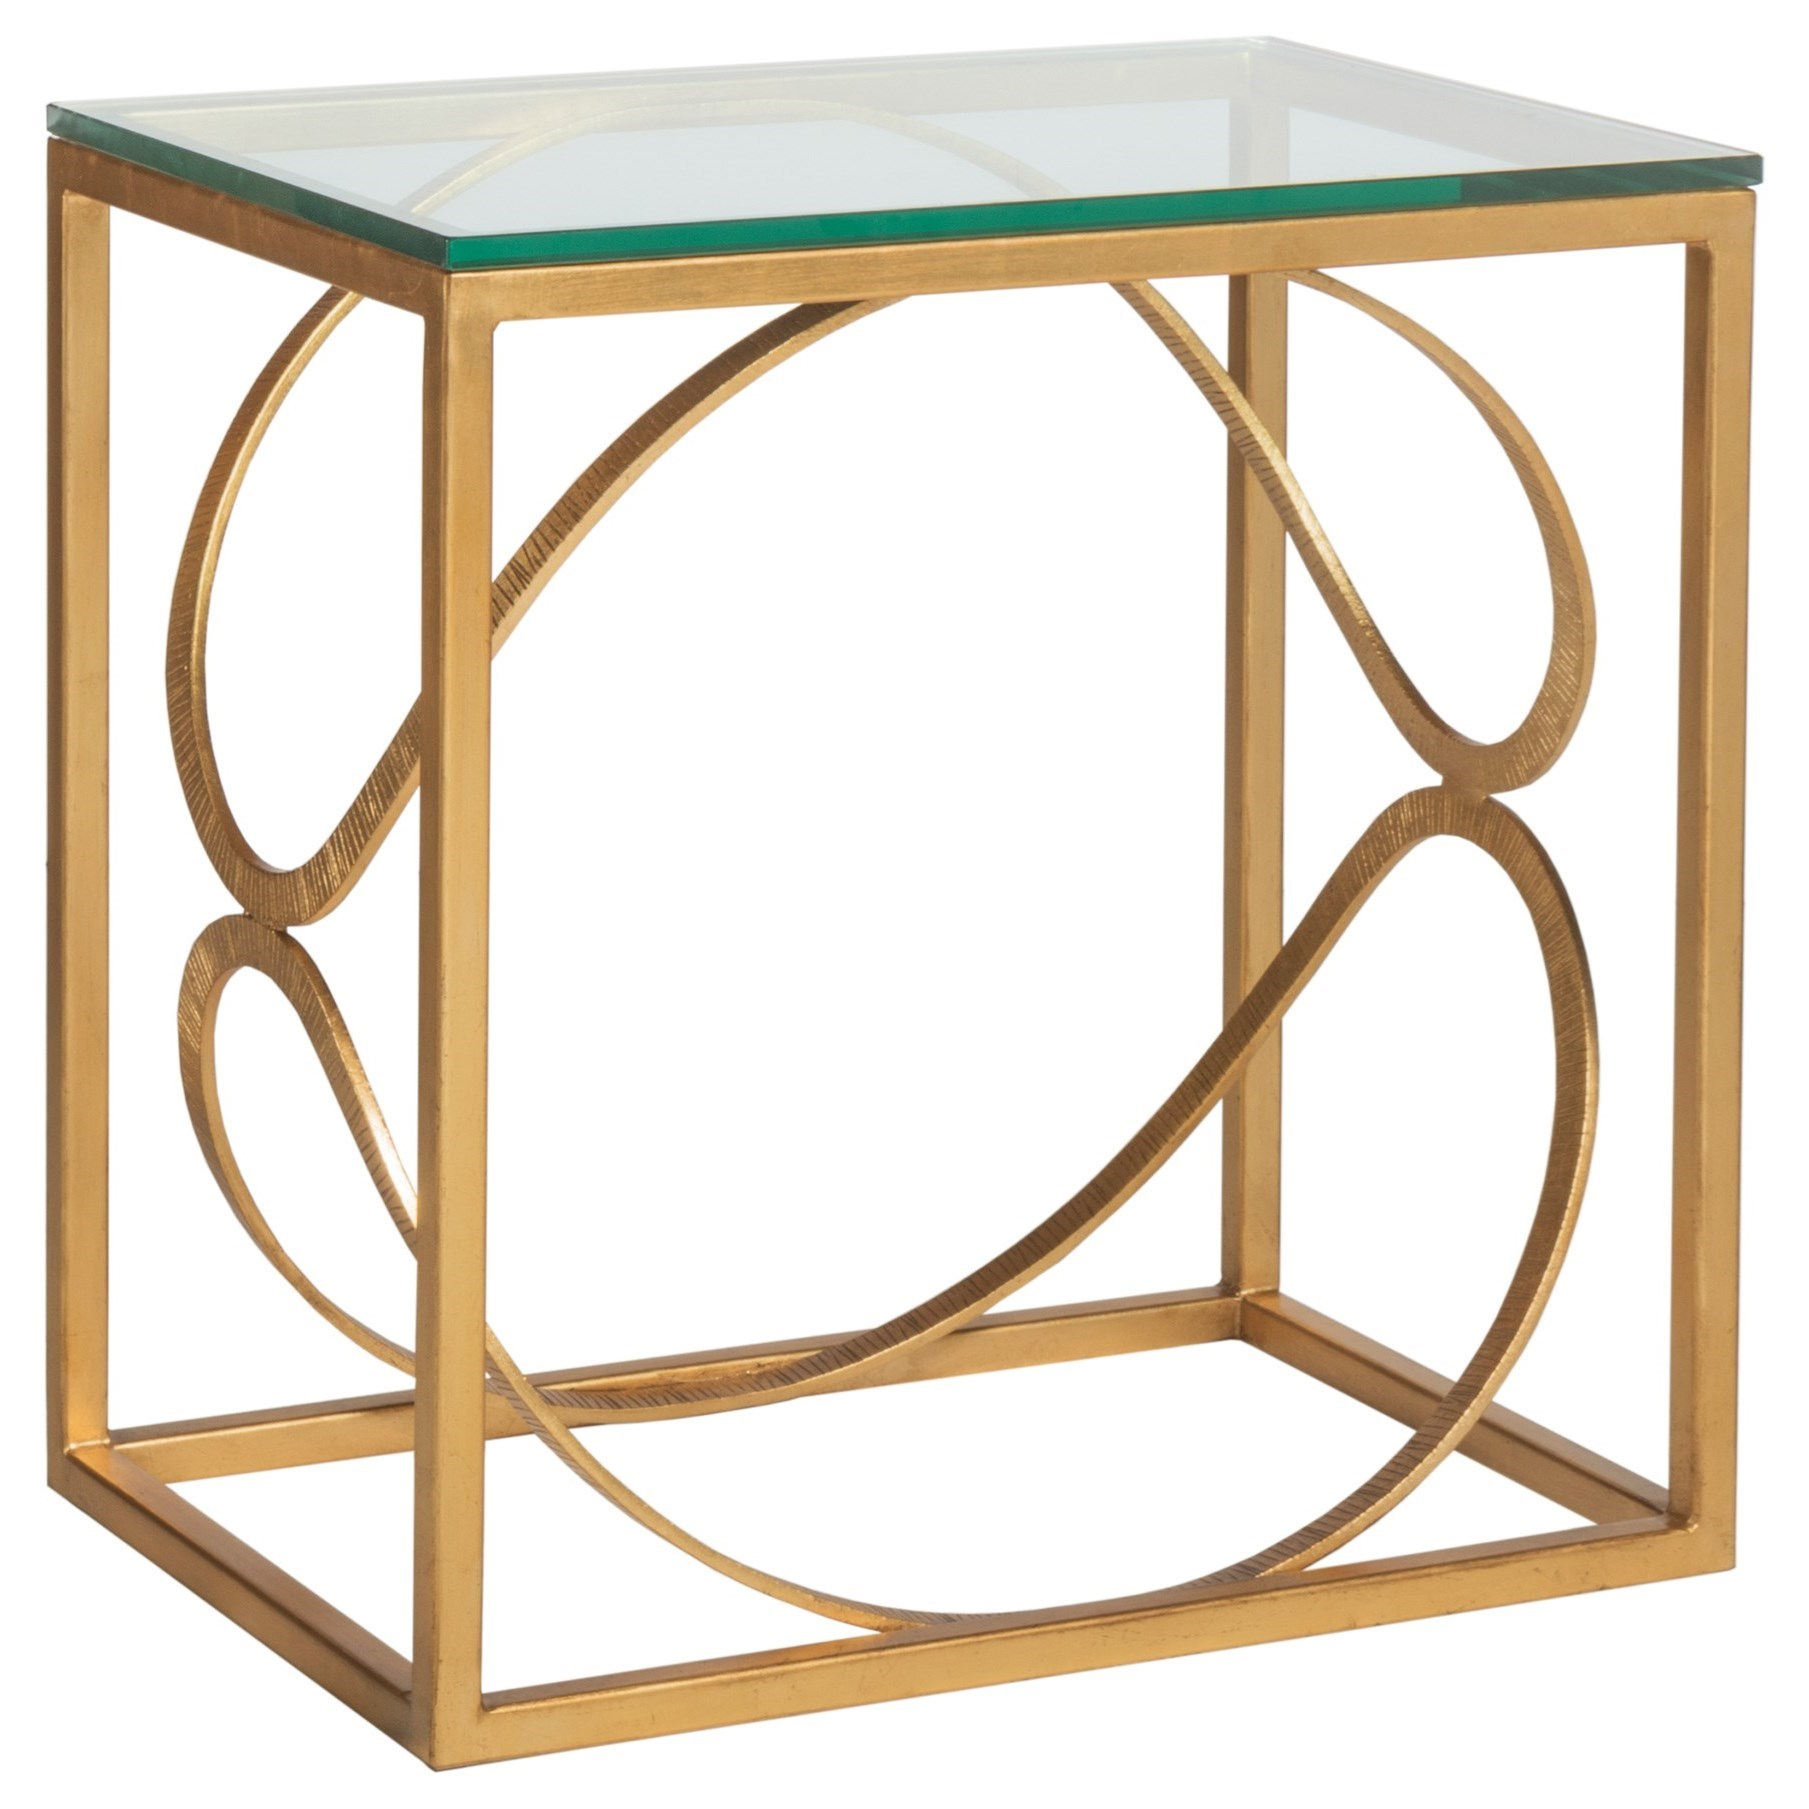 Metal Designs Ellipse Rectangular End Table by Artistica at Baer's Furniture